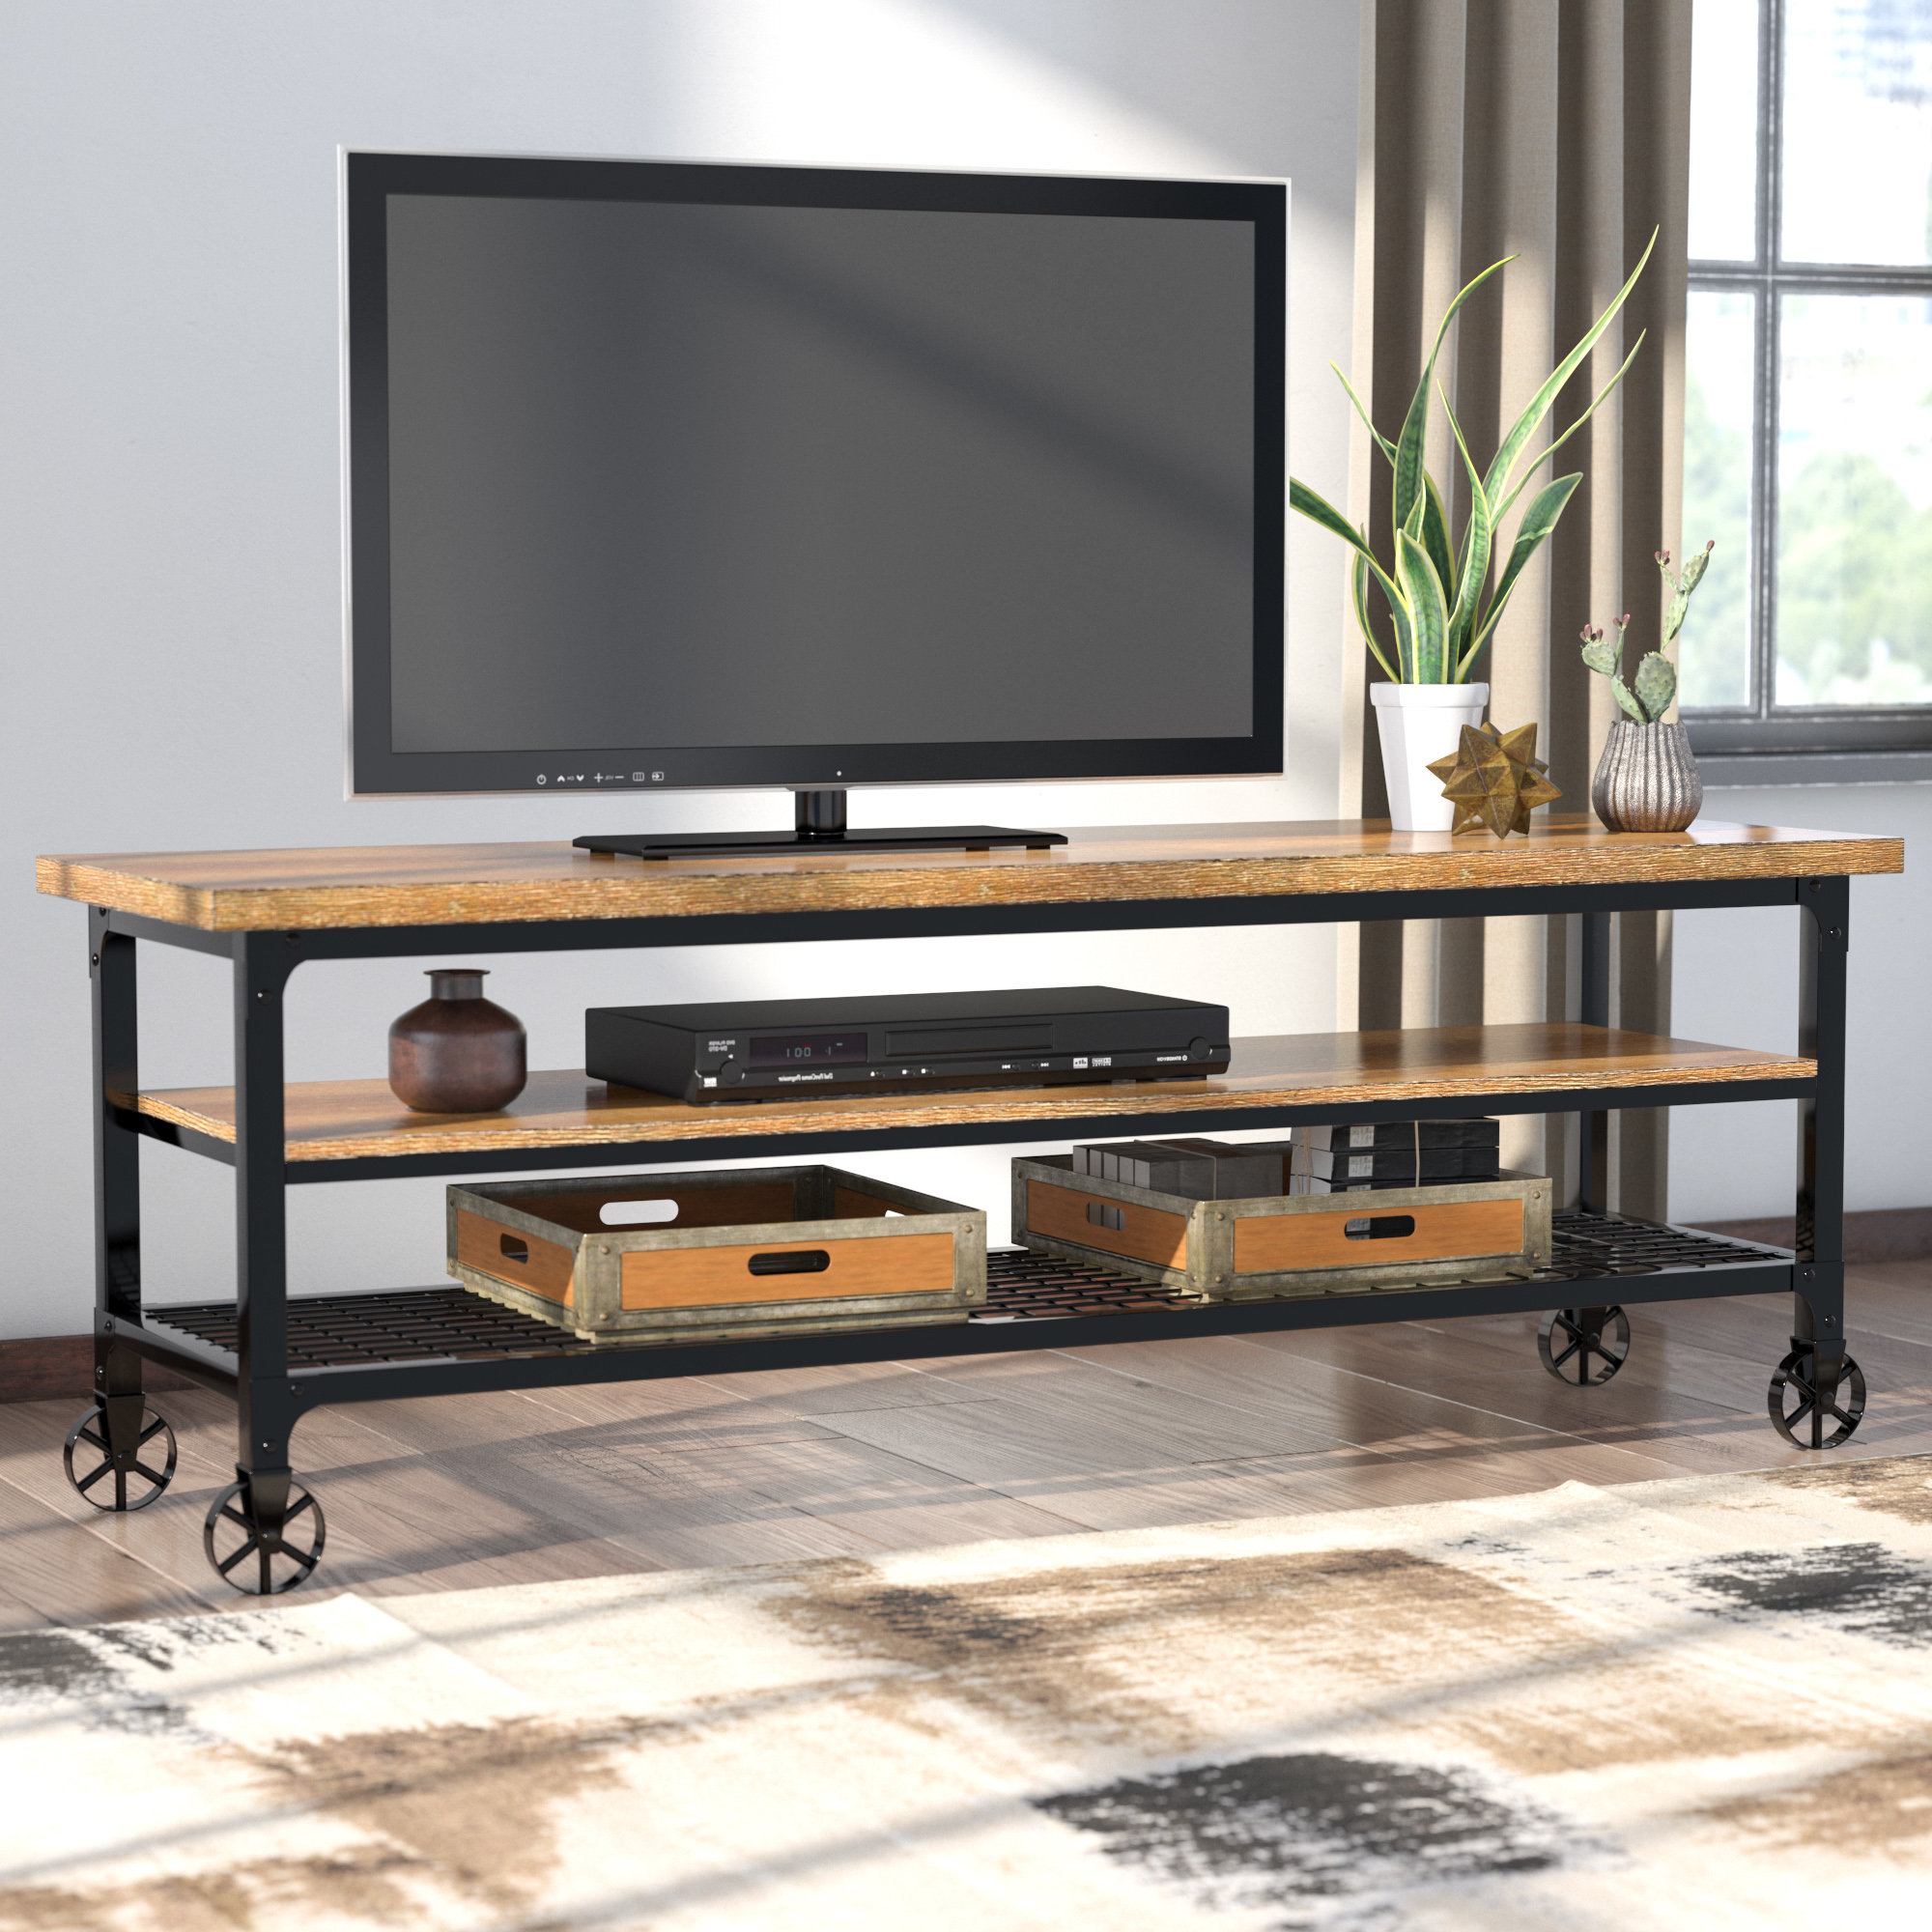 Industrial Tv Stands | Joss & Main Pertaining To Walton 74 Inch Open Tv Stands (View 10 of 20)